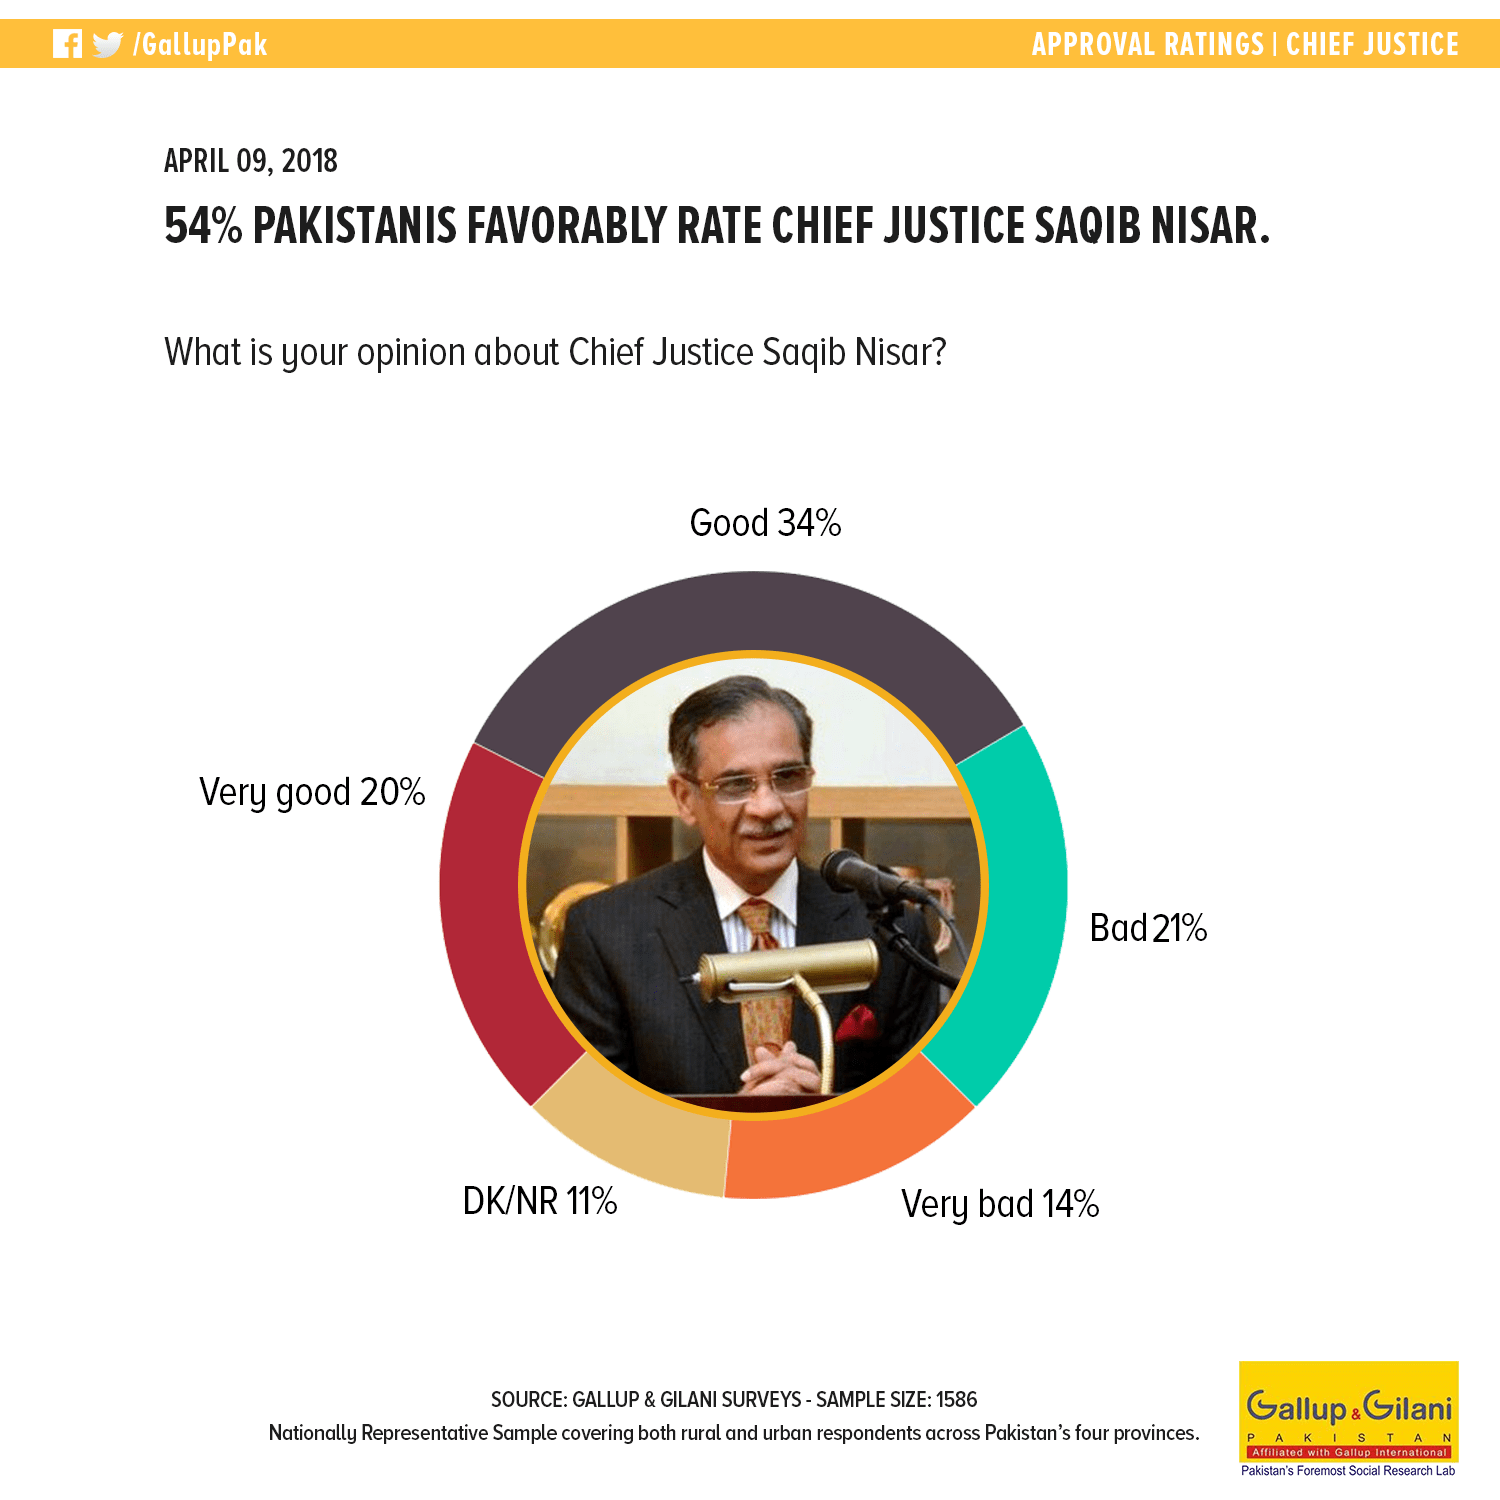 54% Pakistanis favorably rate Chief Justice Saqib Nisar..